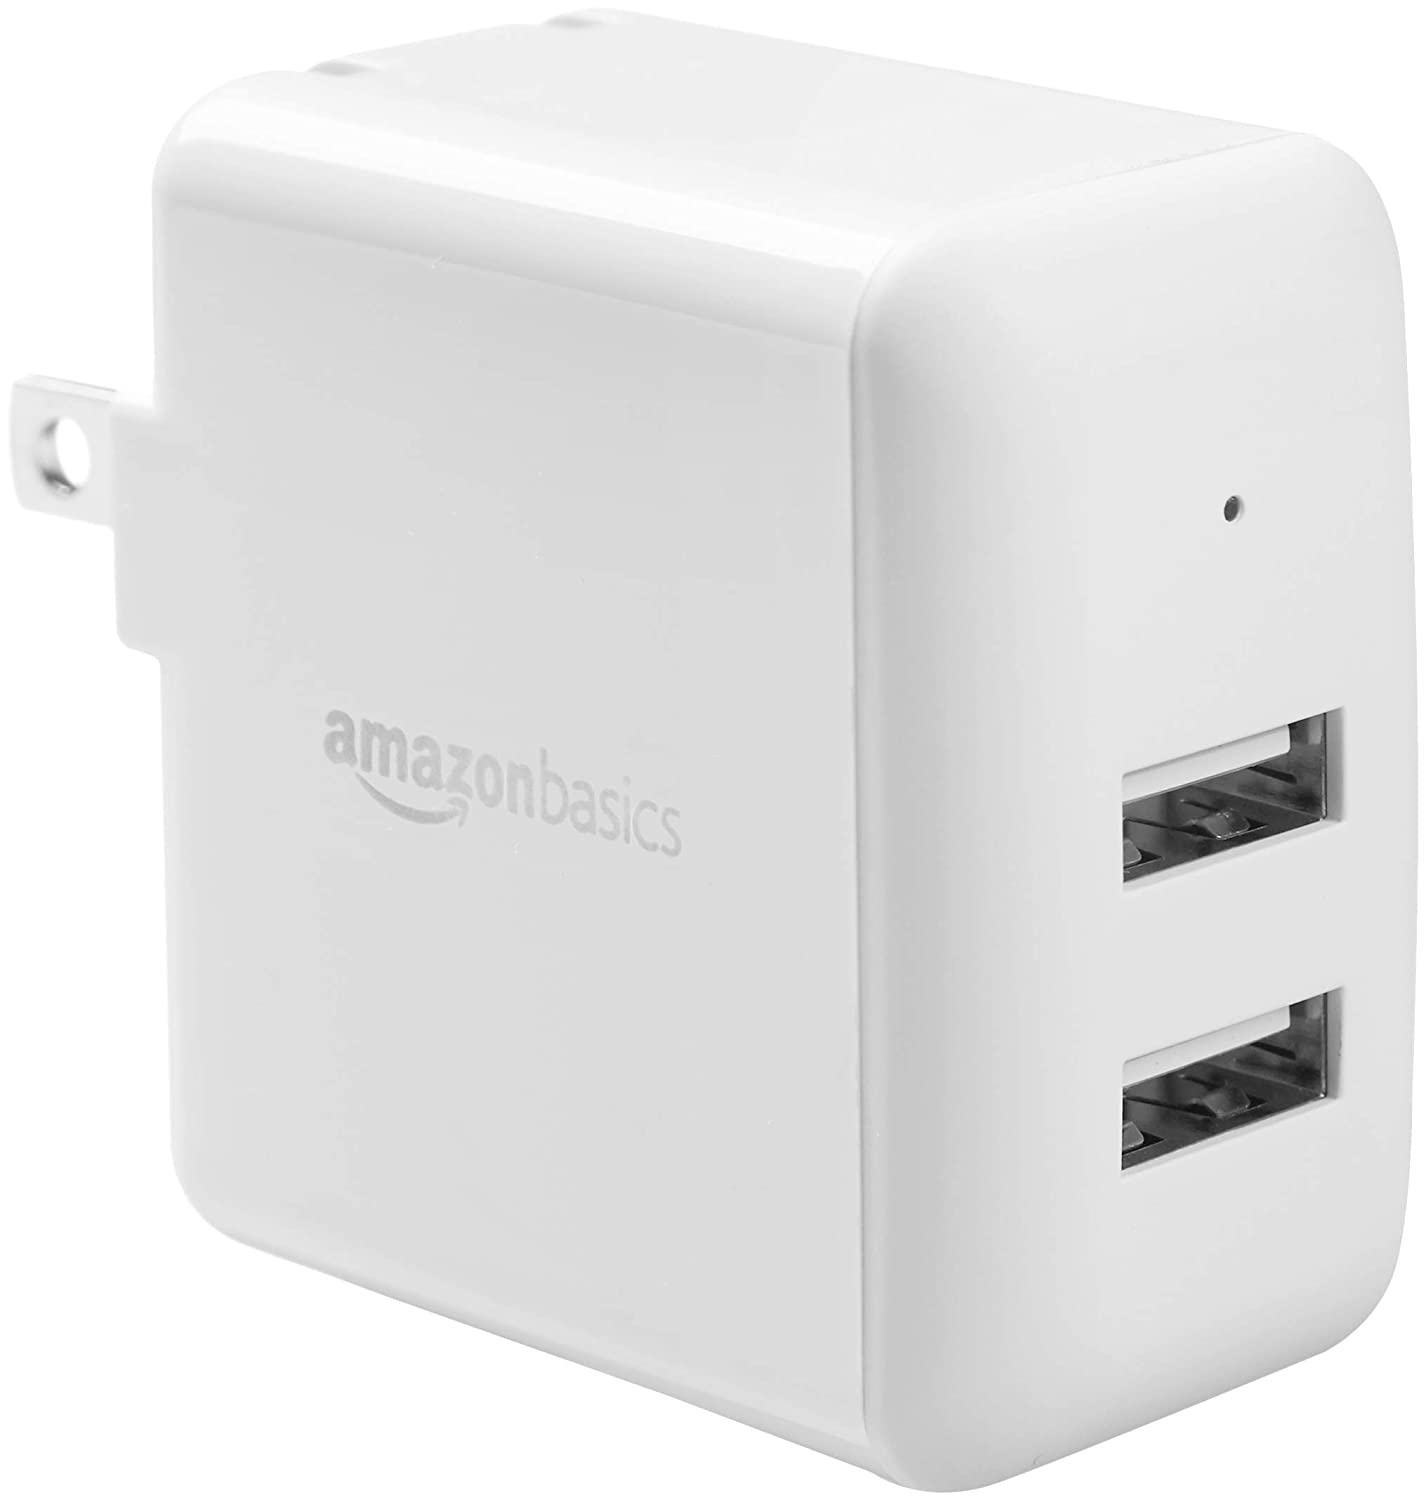 AmazonBasics Dual-Port USB Wall Charger (2.4 Amp) - White